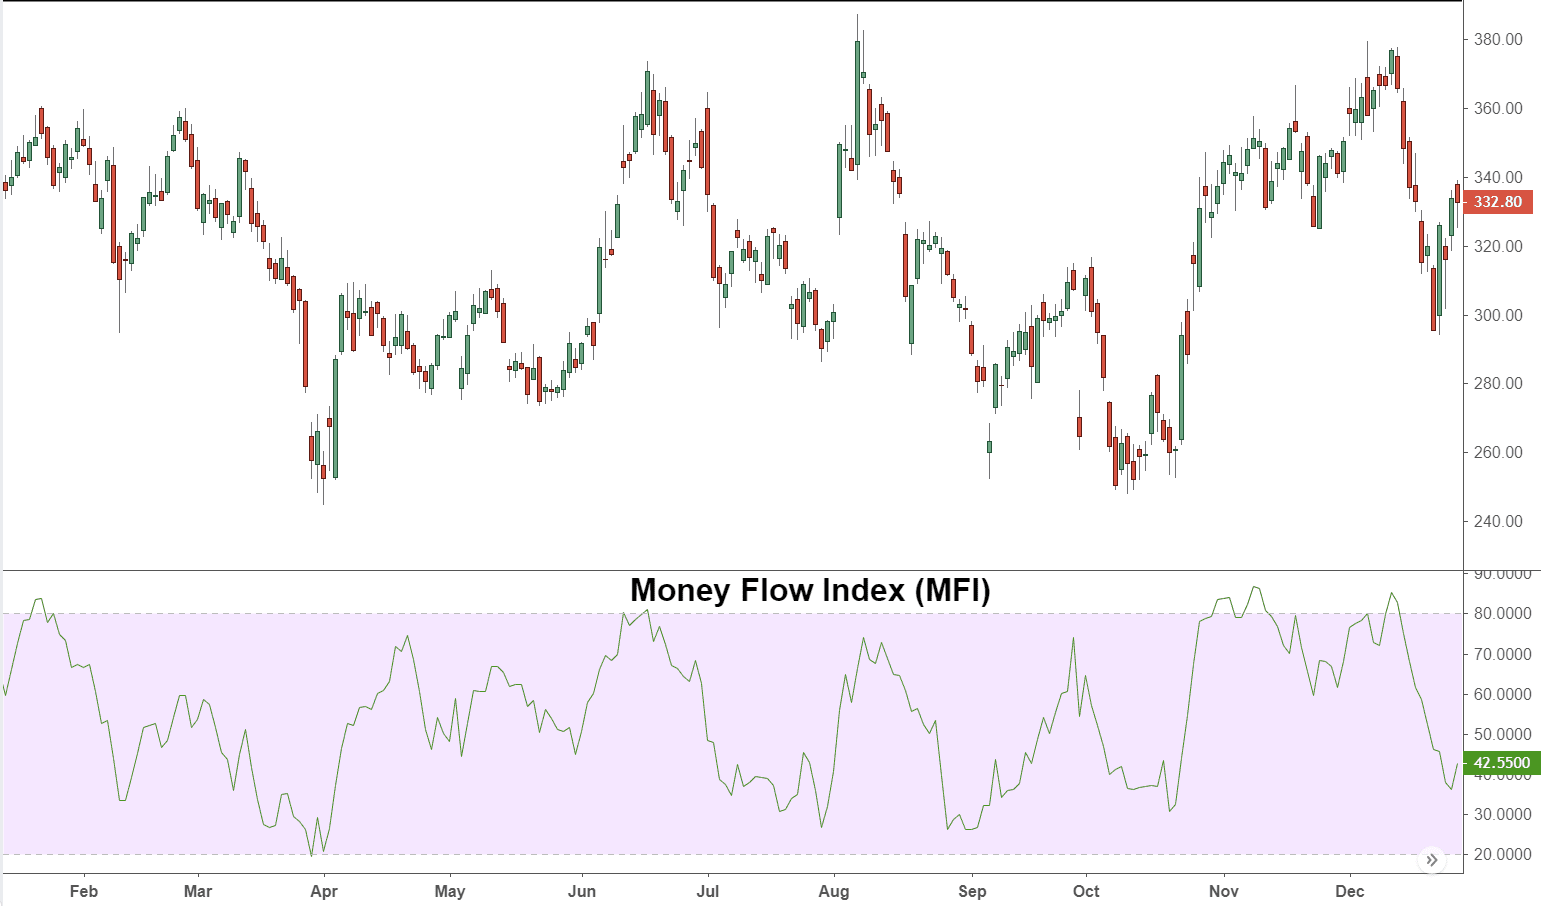 Money Flow Index - MFI Definition and Uses